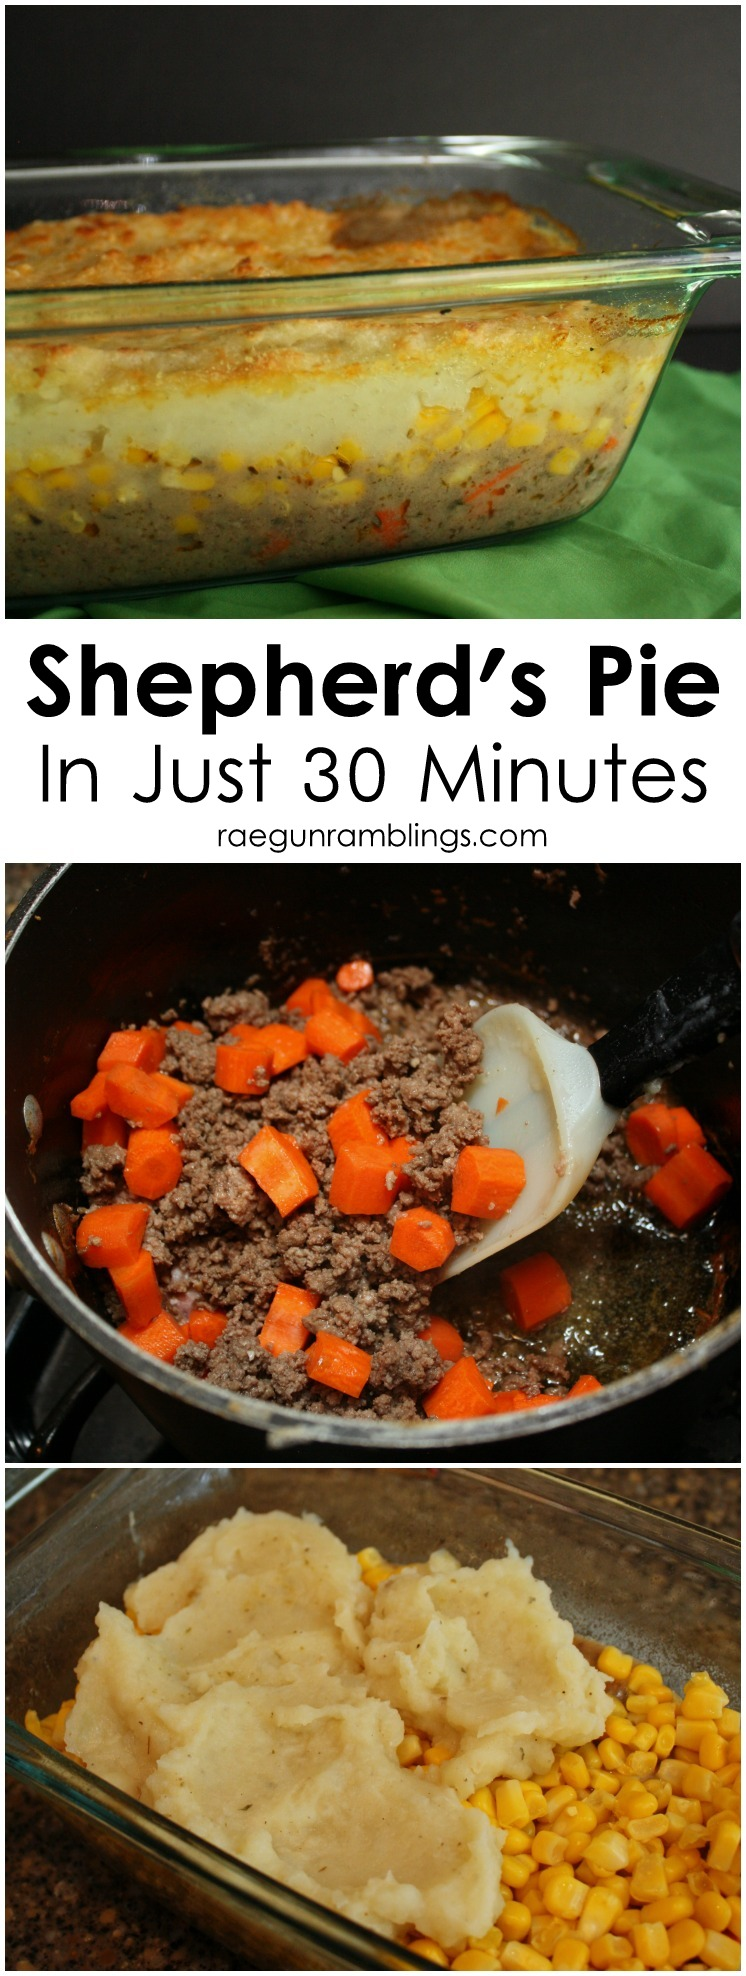 the best shepherd's pie recipe. So quick and easy. Great addition for St. Patrick's Day and Pi Day